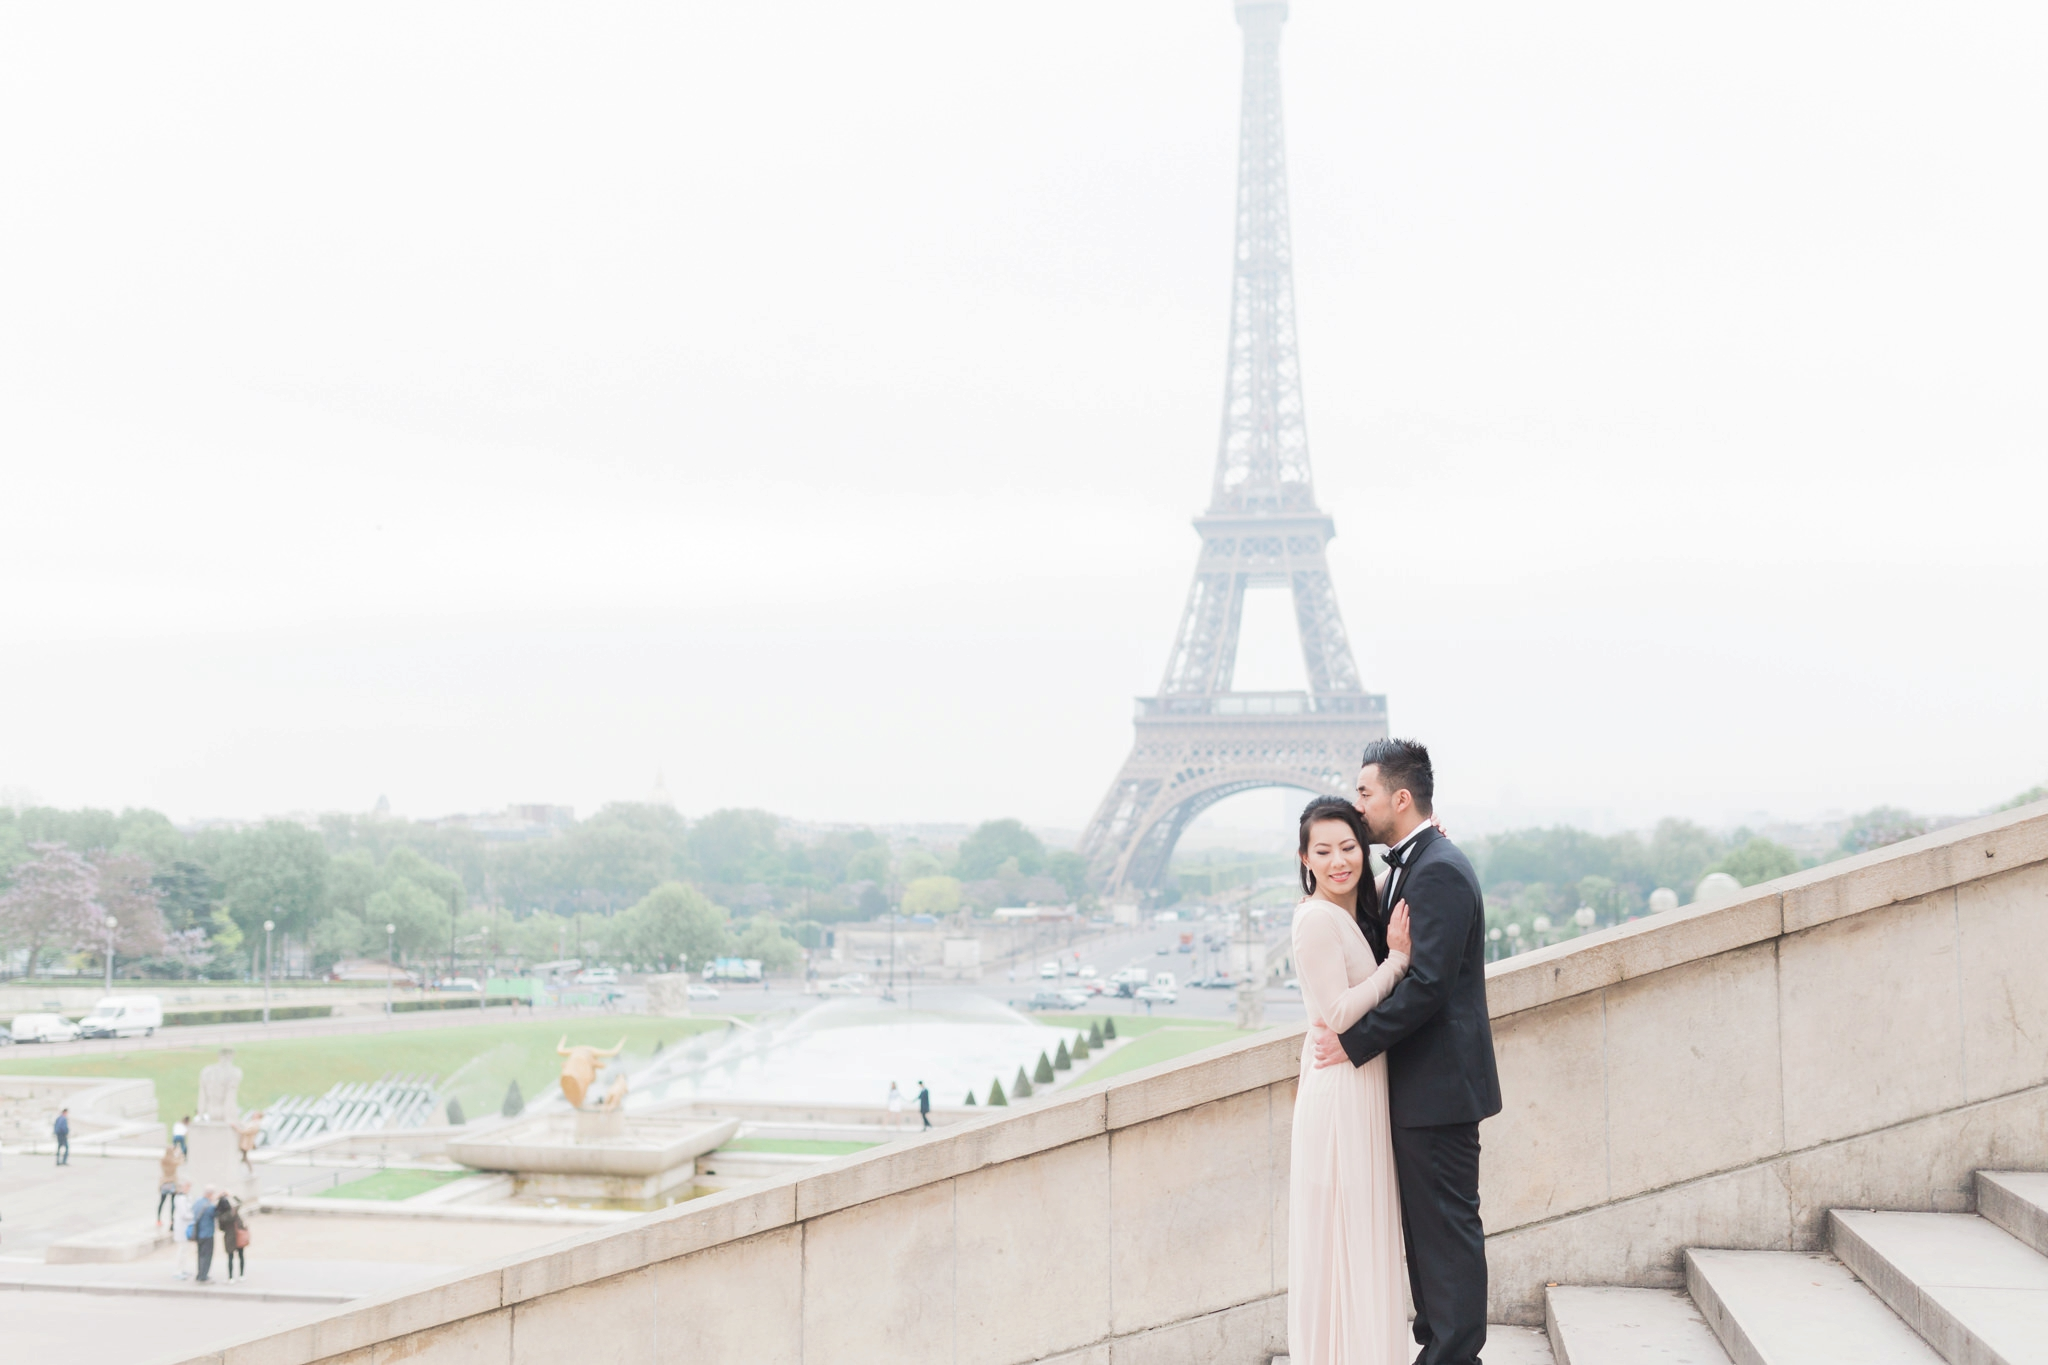 Suzanne_li_photography_paris_engagement_shoot_0027.jpg